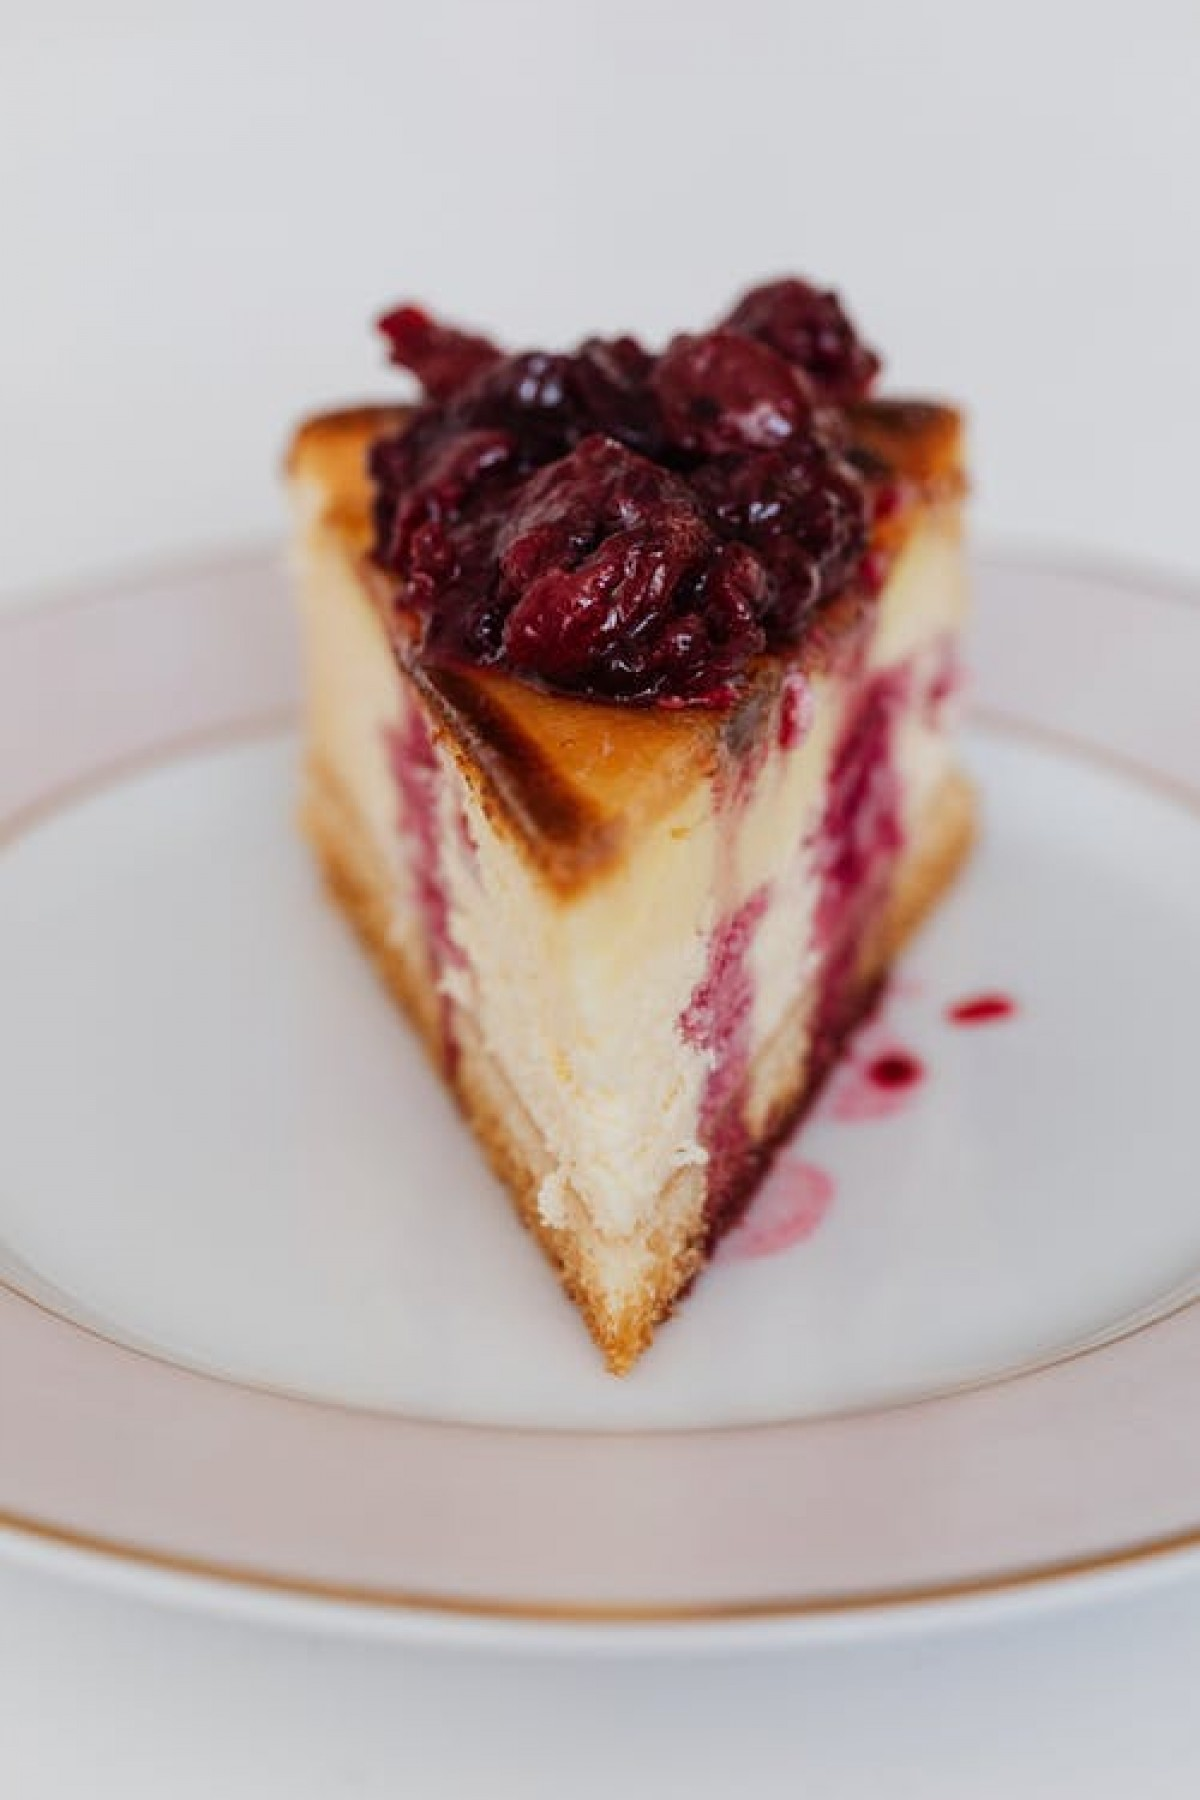 Cheesecake Cru, Passion Et Ivoire